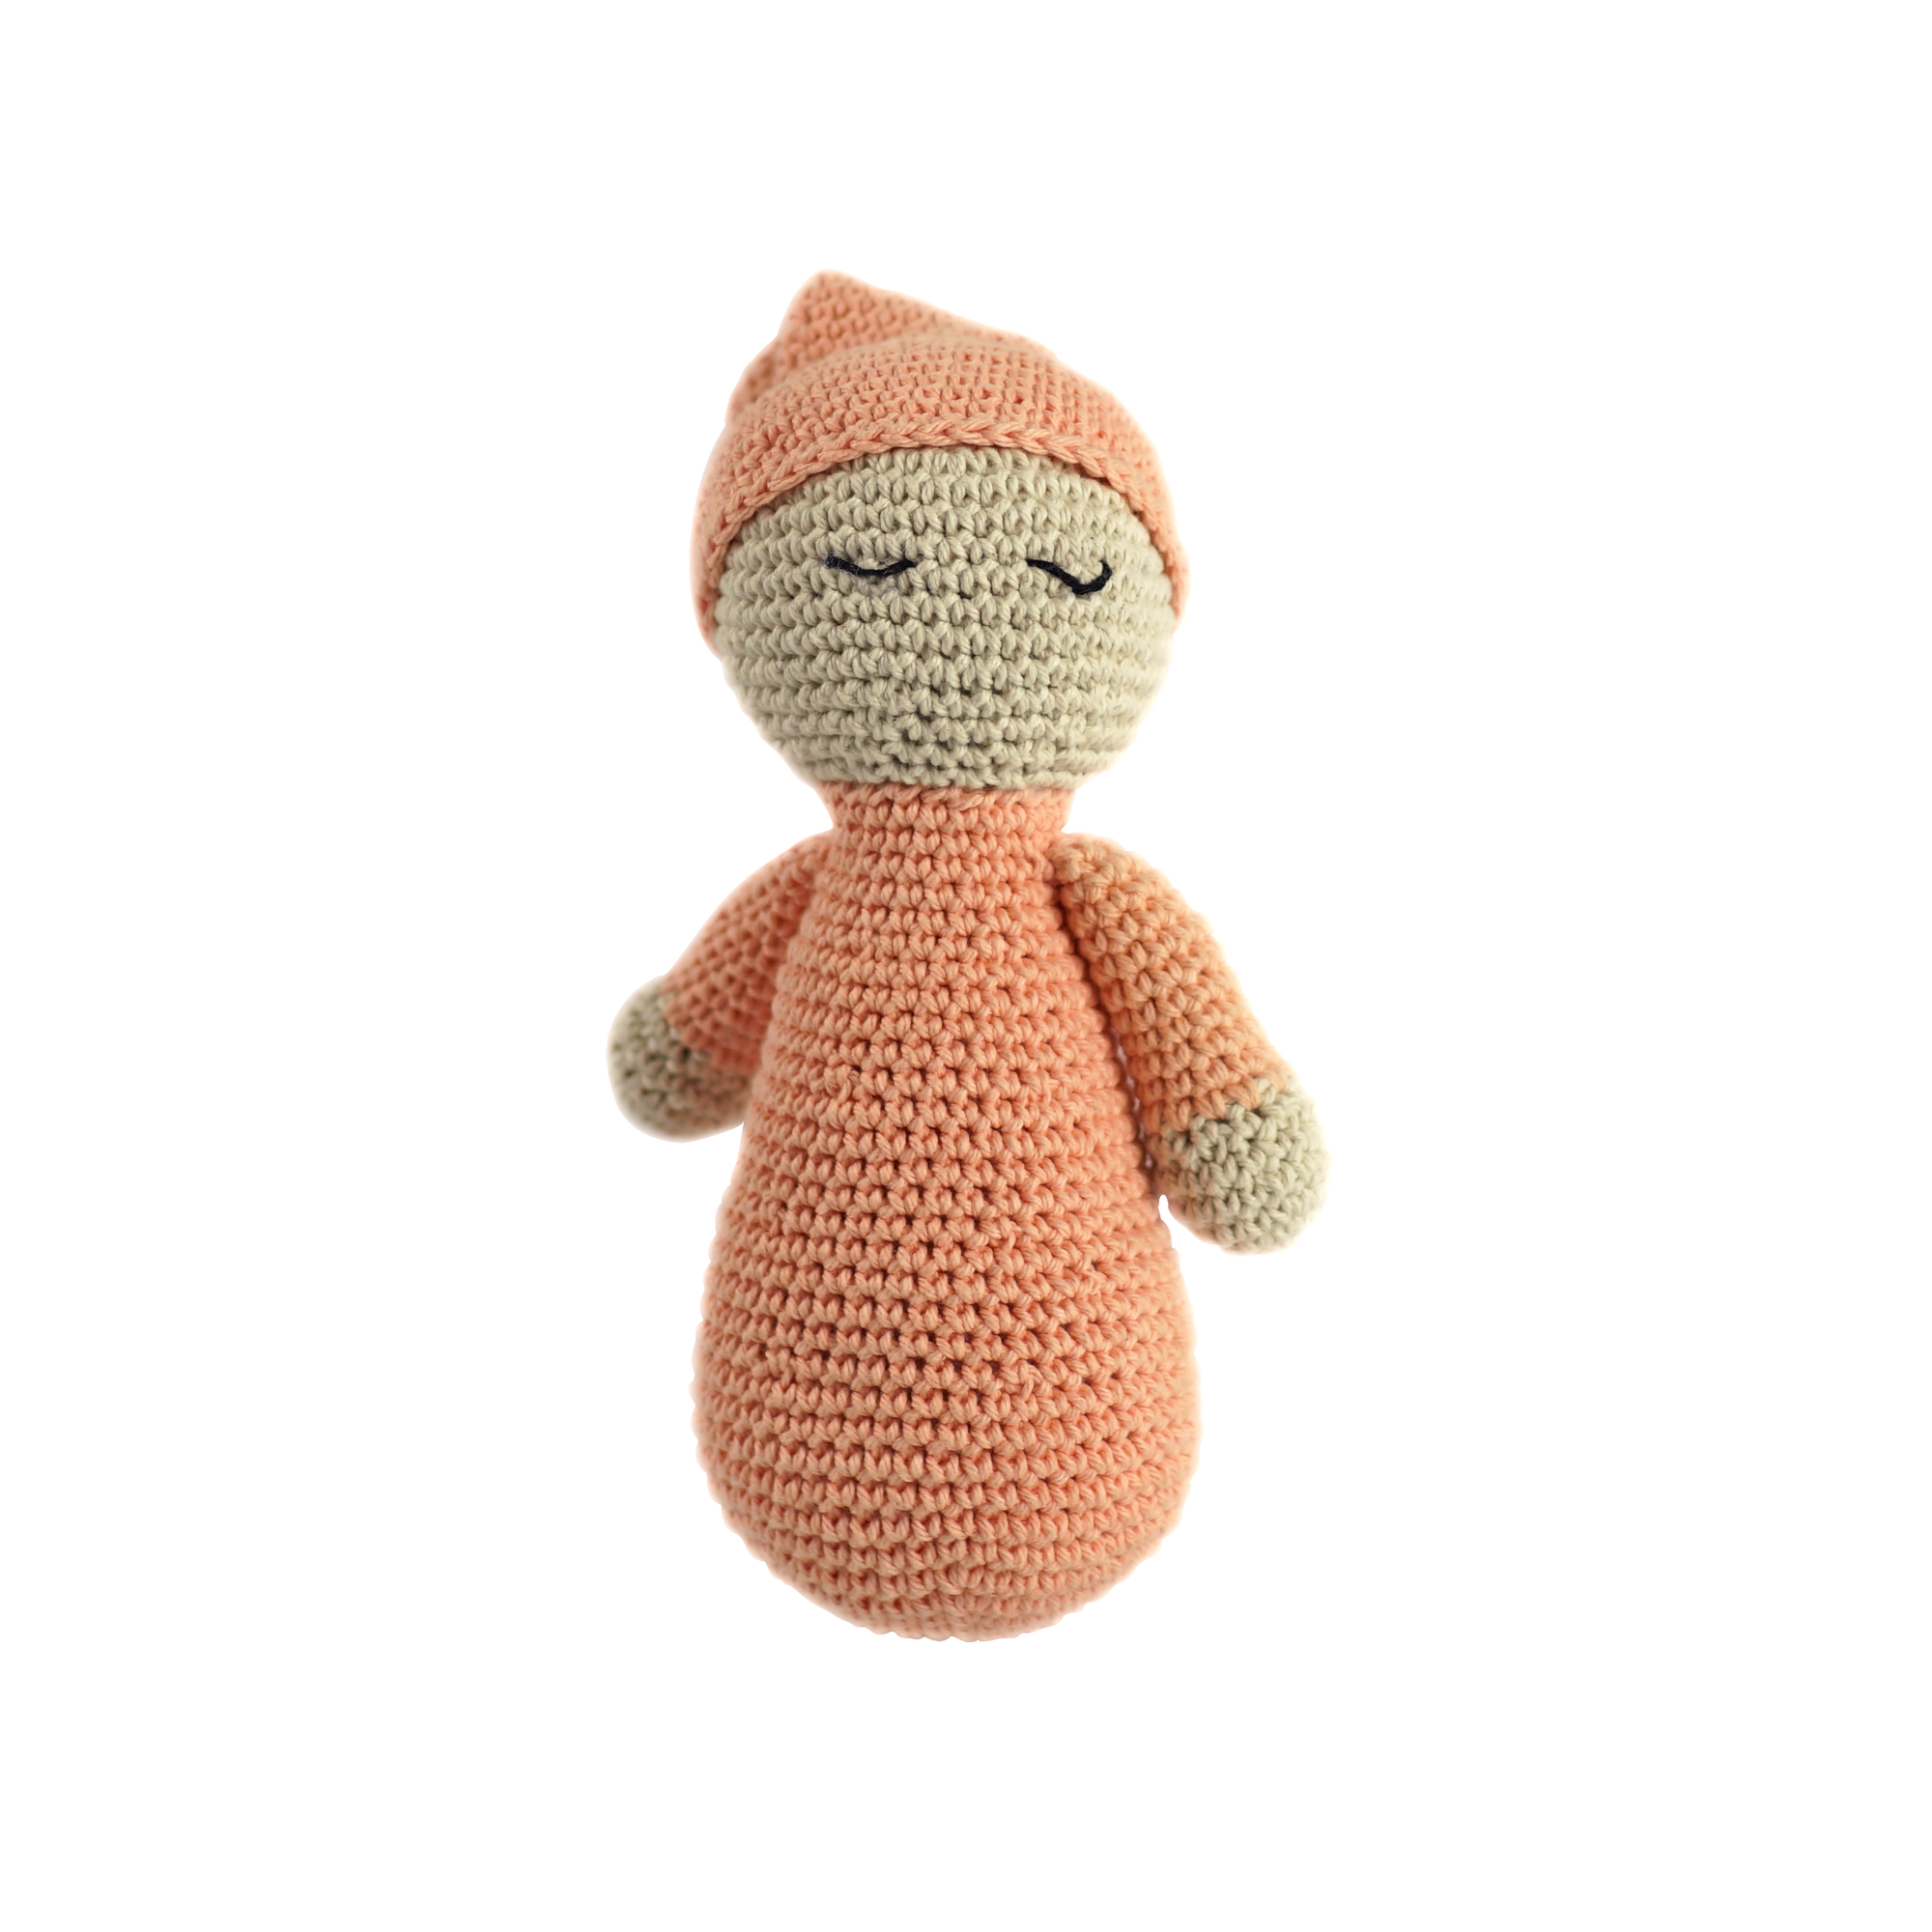 Soninho Baby Ghost | Toys | Arunny | [product_tag] - Fair Bazaar Ethical Living